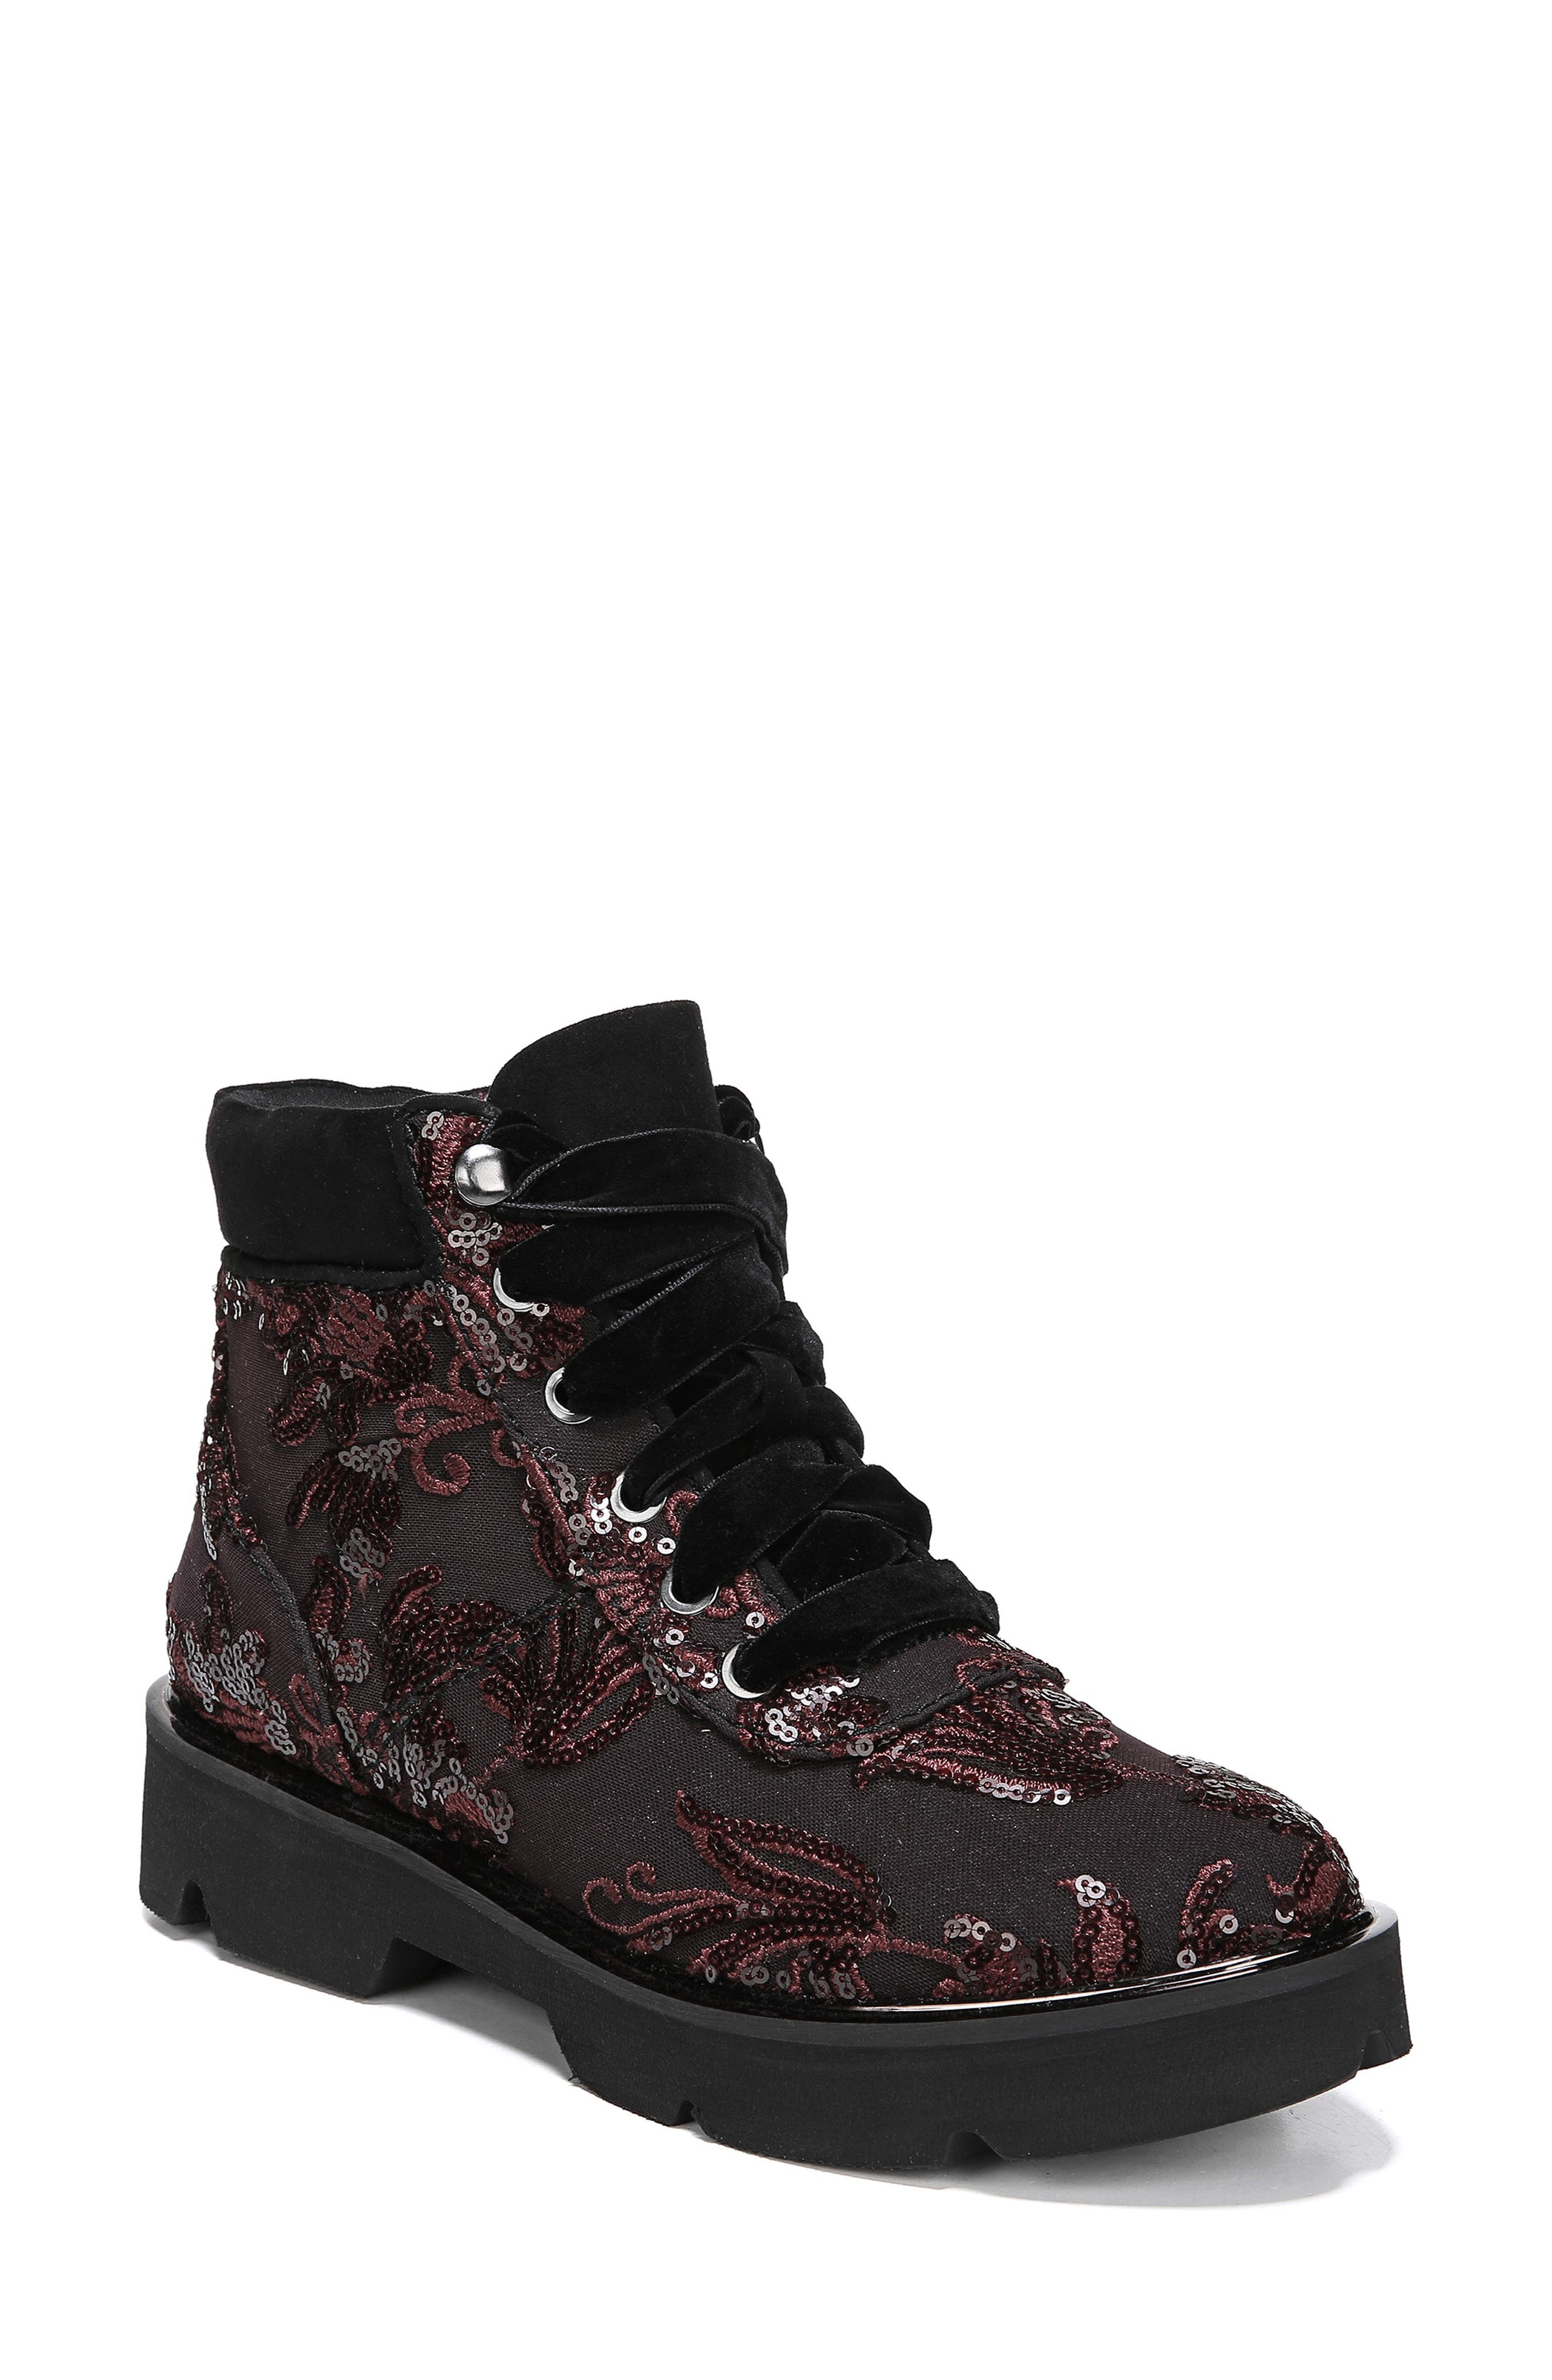 Naturalizer Lucy Hiking Boot, Burgundy